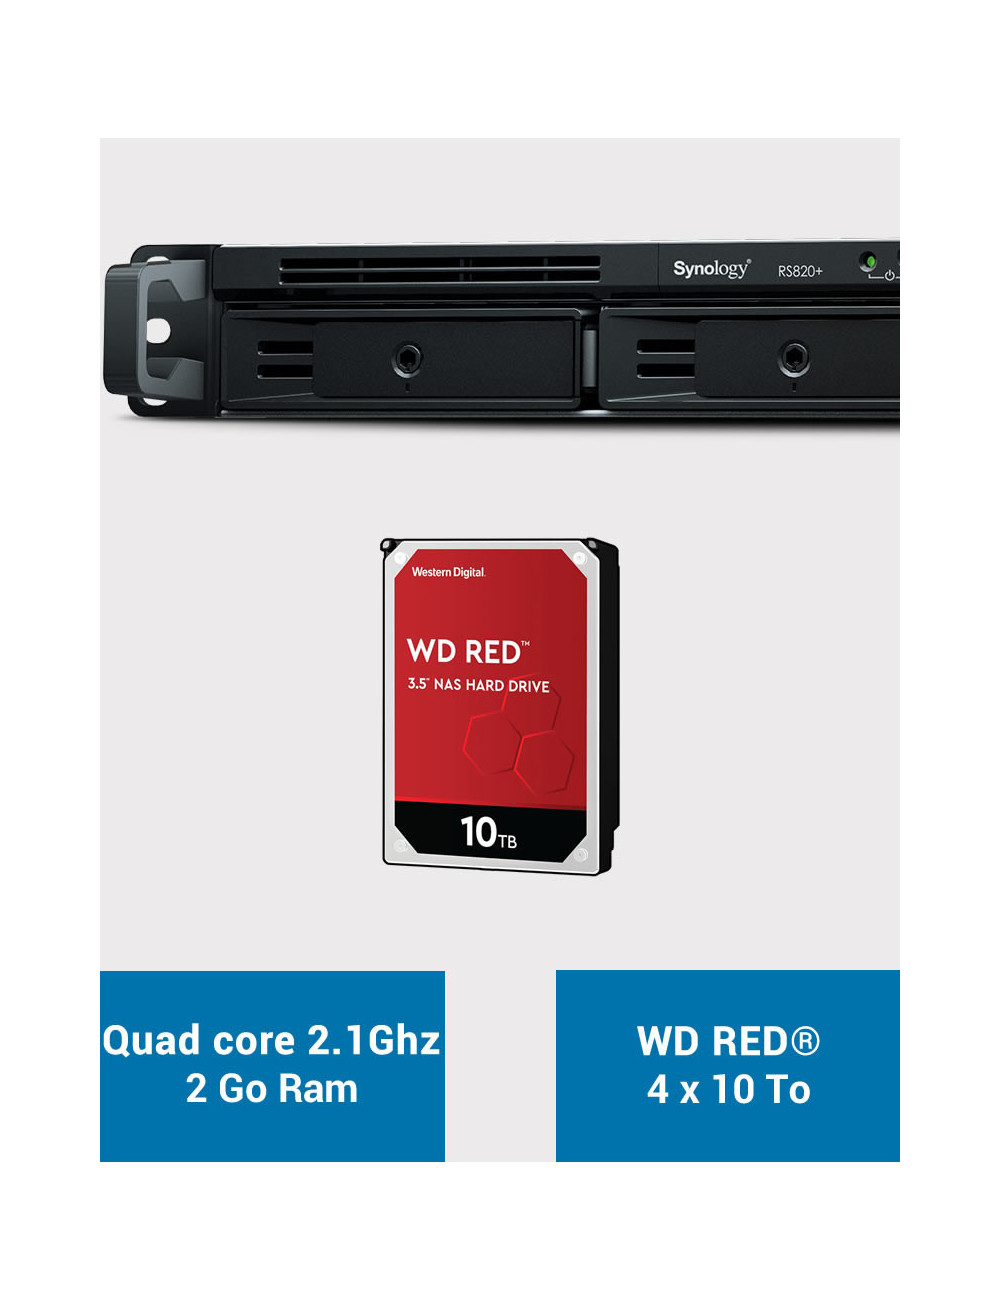 Synology RS820+ Serveur NAS WD RED 40To (4x10To)